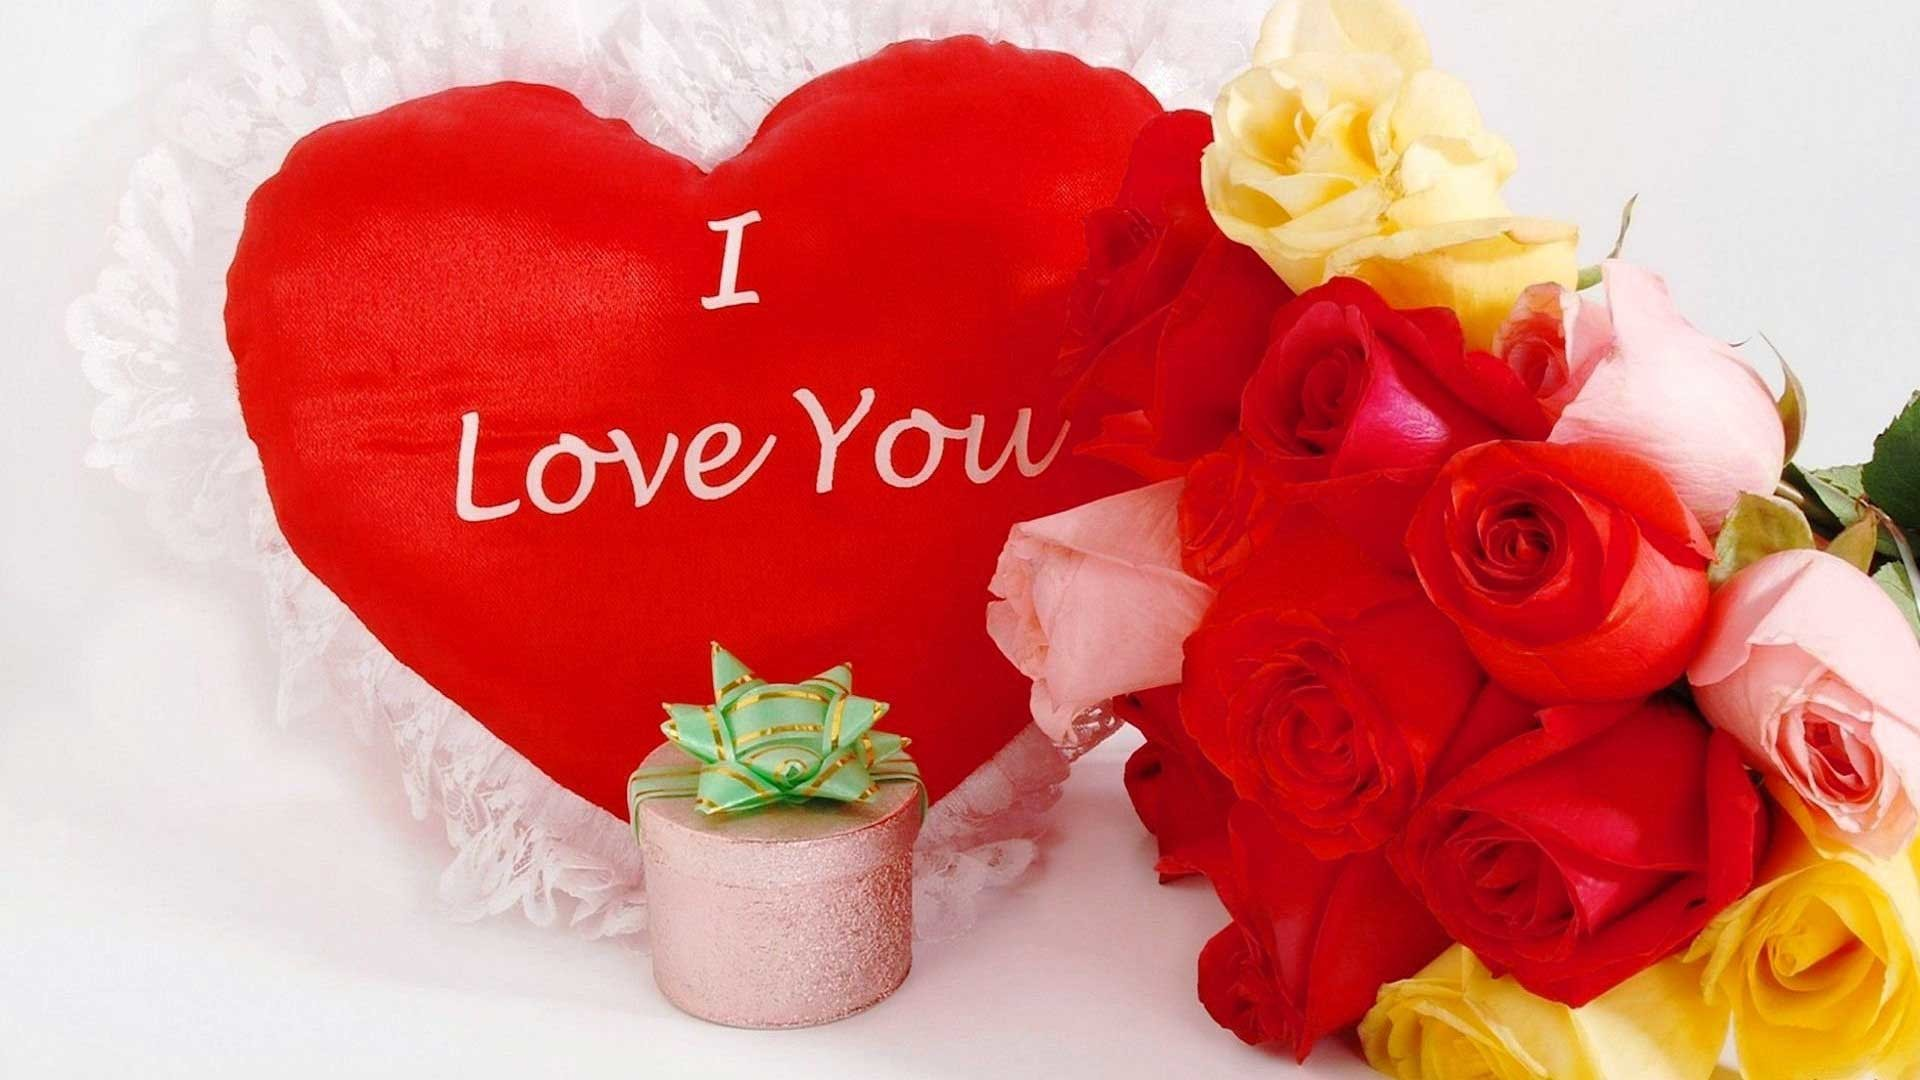 Love U Wallpapers With Quotes I Love You Wallpapers With Quotes 56 Images